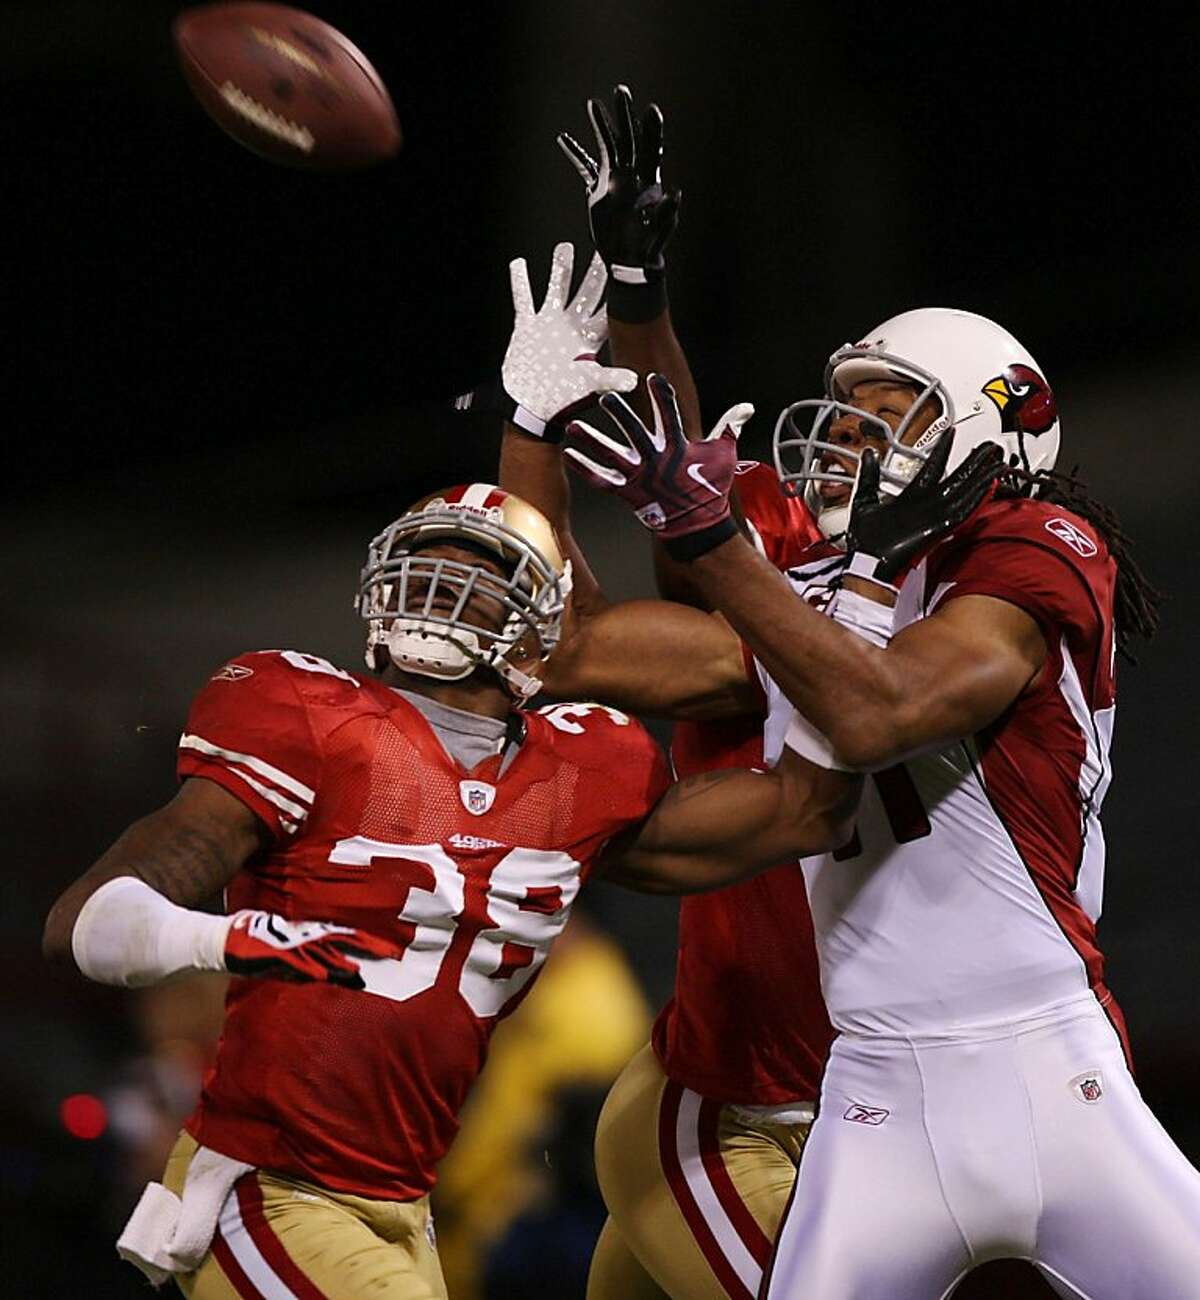 SAN FRANCISCO - DECEMBER 14: Wide receiver Larry Fitzgerald #11 of the Arizona Cardinals goes up for a catch as it is broken up by Dashon Goldson #38 of the San Francisco 49ers in the first half at Candlestick Park on December 14, 2009 in San Francisco, California. The pass was ruled incomplete after a Cardinals challenge. (Photo by Jed Jacobsohn/Getty Images)